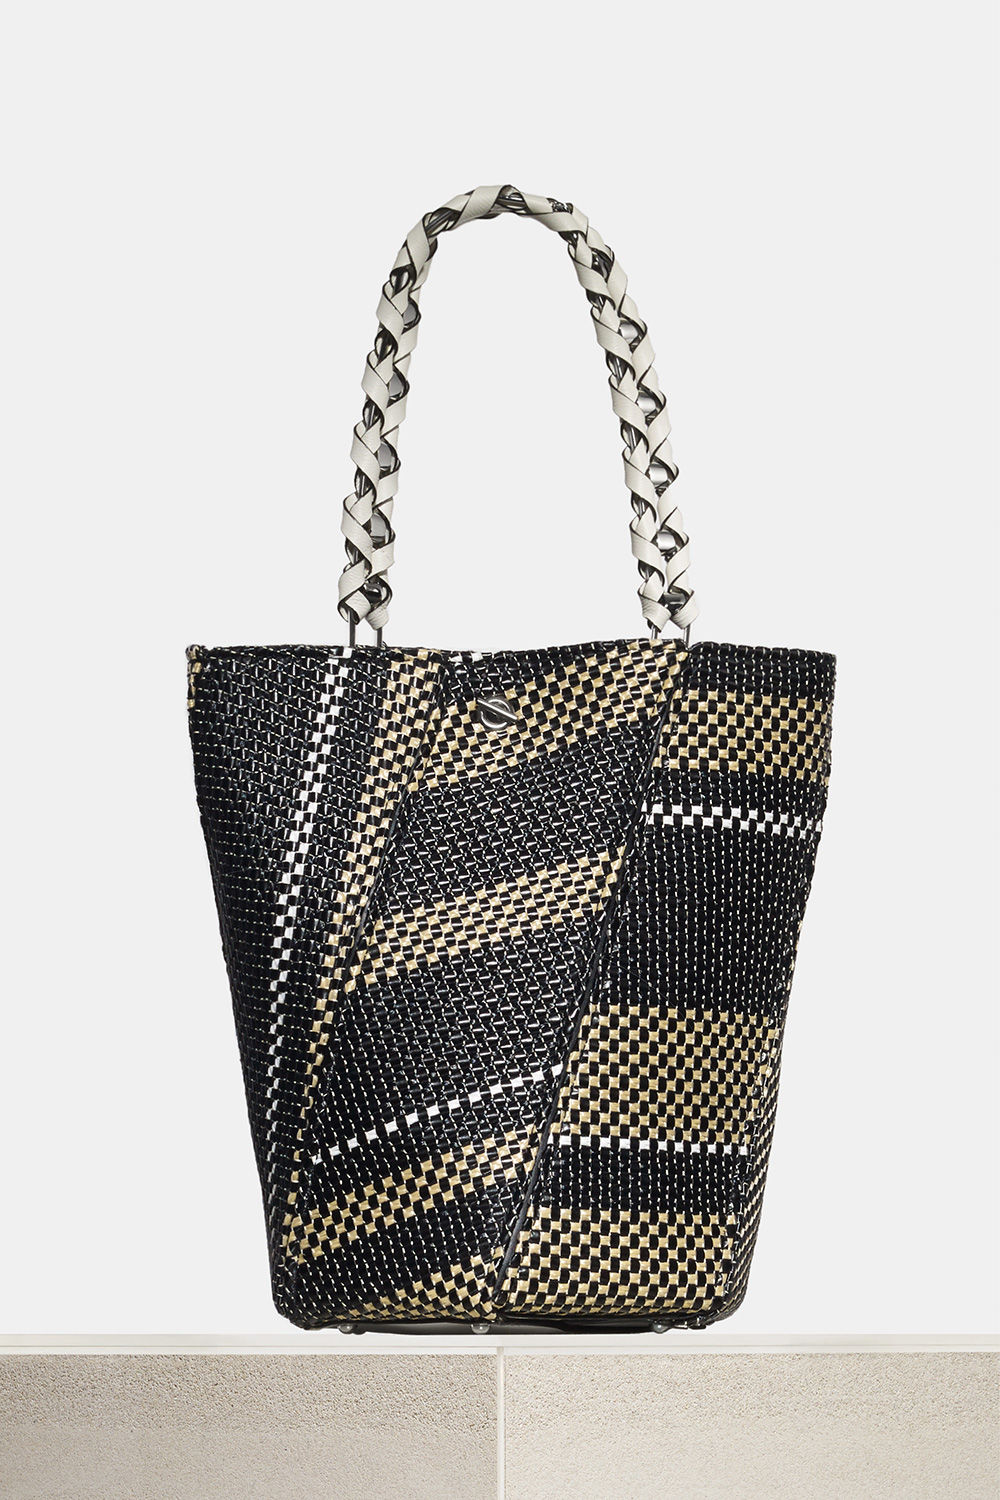 proenza schouler spring 2018 black white ecru woven raffia medium hex bucket bag